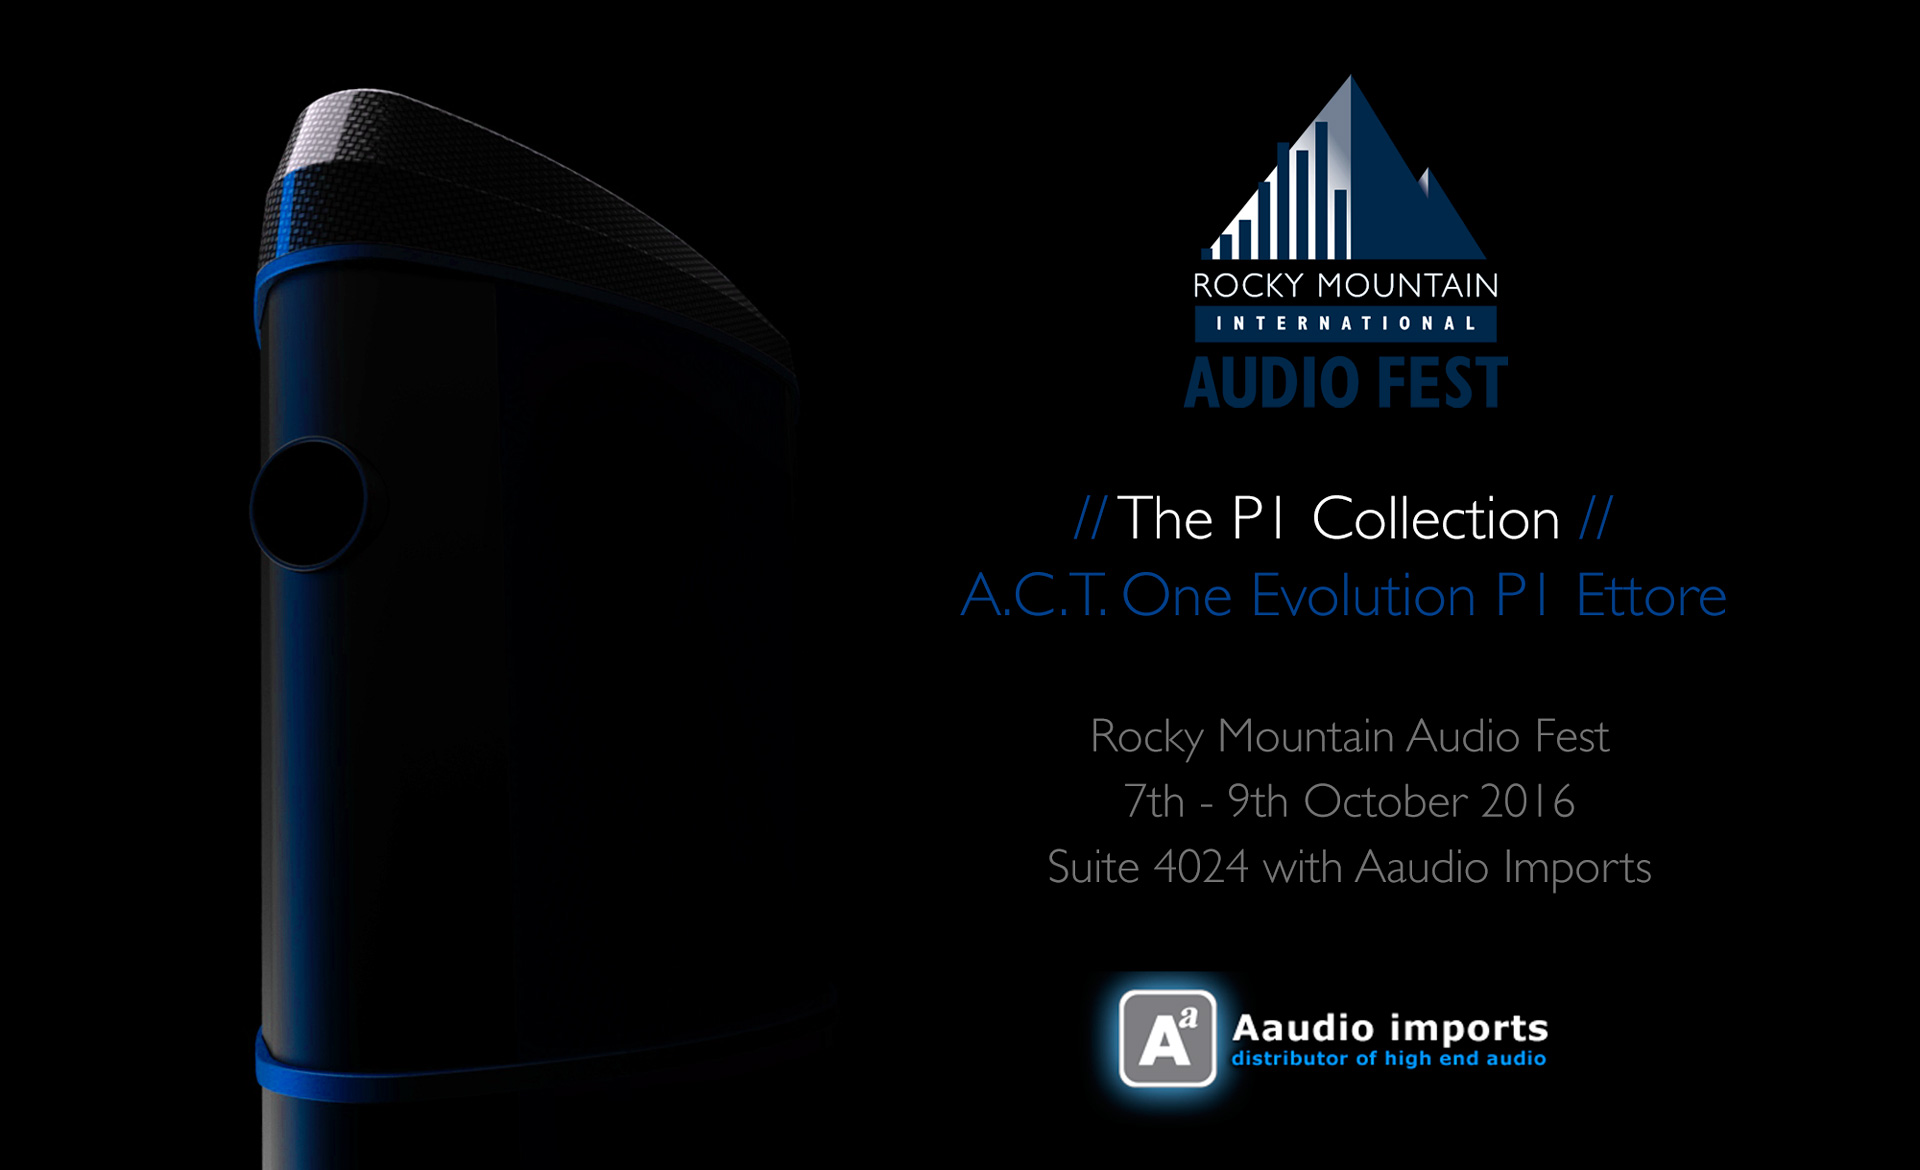 P1 Collection Tour // Rocky Mountain Audio Fest, Denver, USA